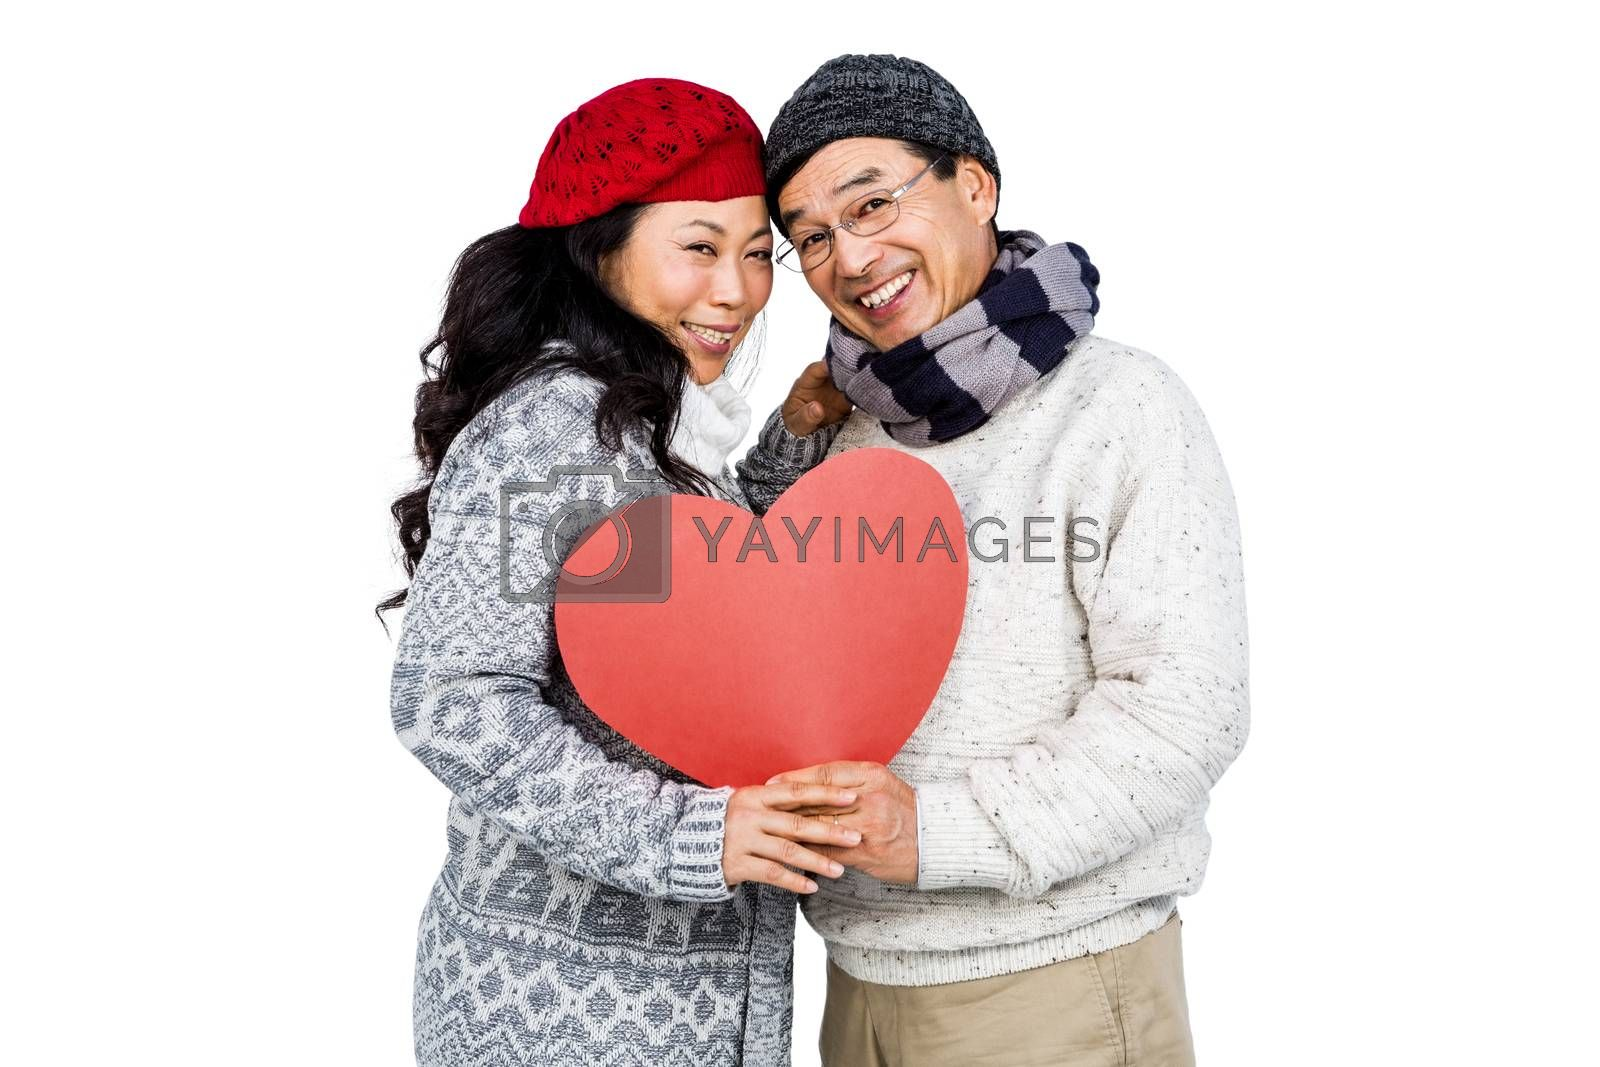 Portrait of happy couple with balloon against white background